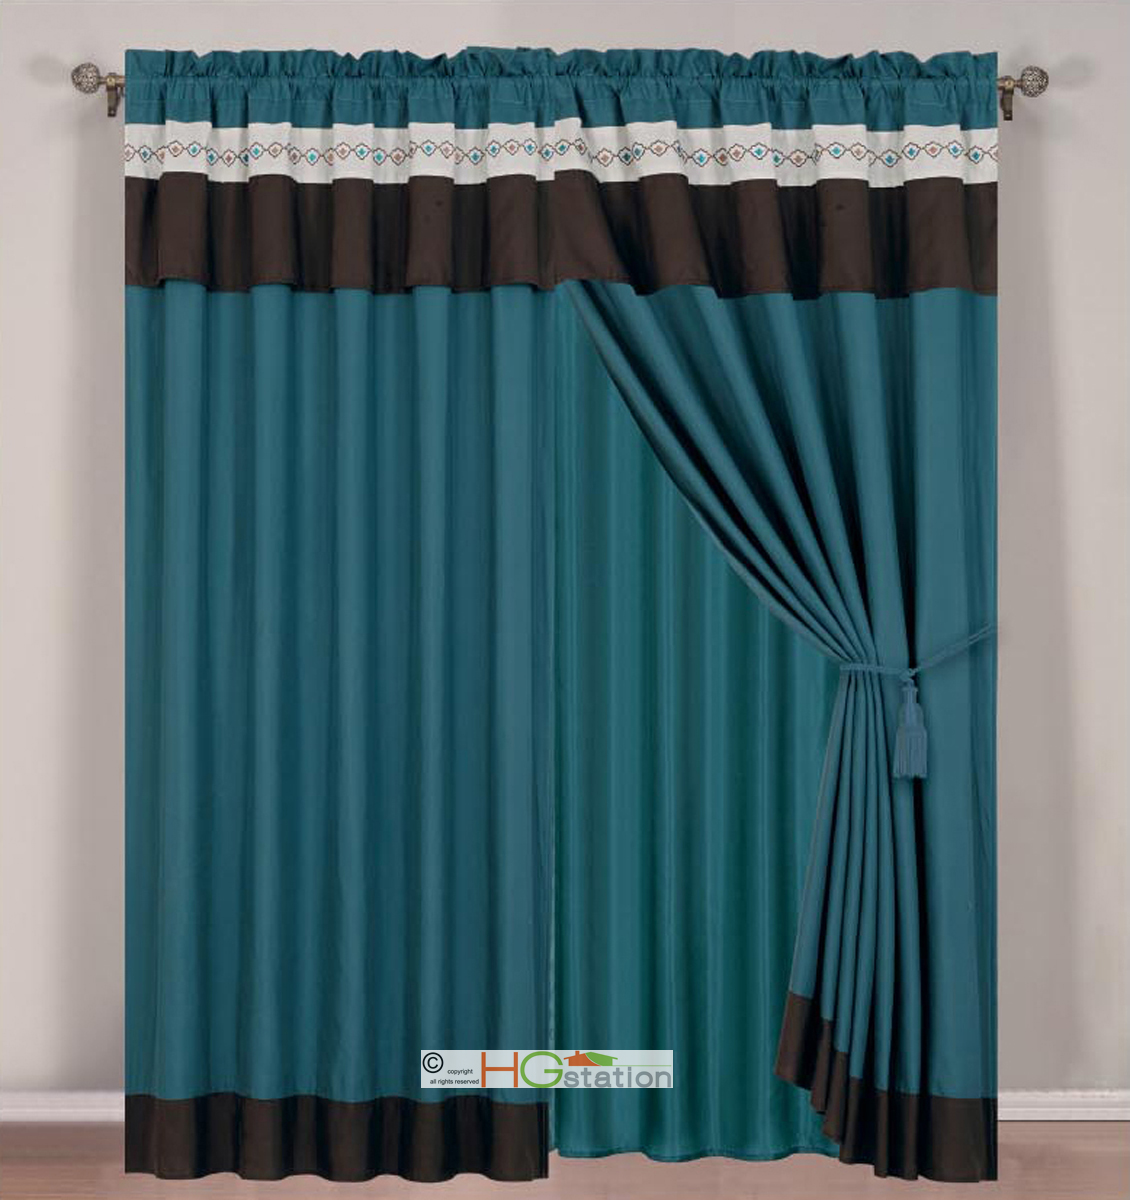 4 Pc Floral Damask Embroidery Curtain Set Teal Blue Green Brown Ivory Drape Valance Liner